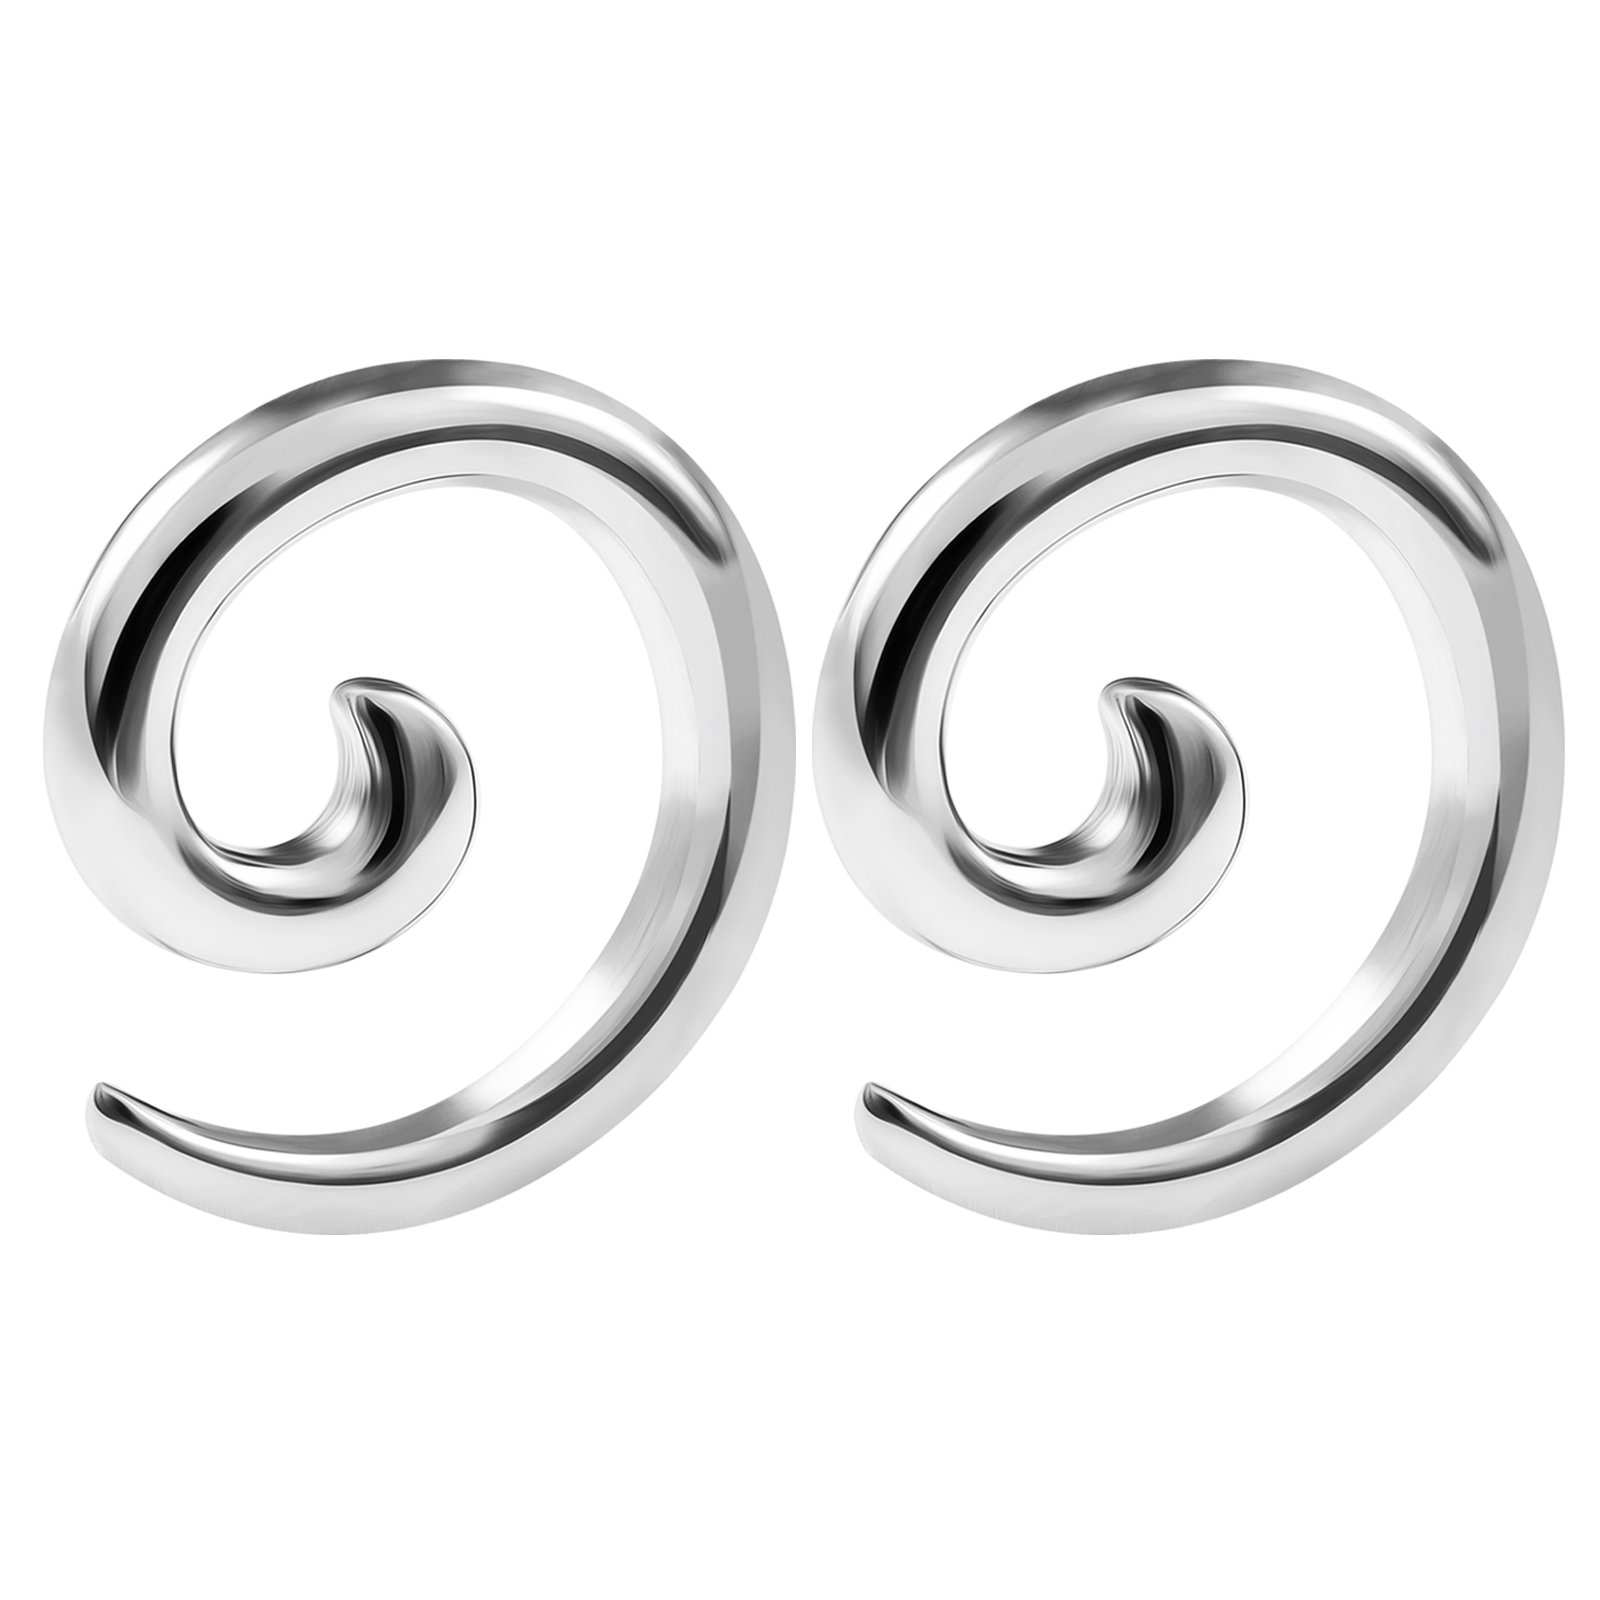 BIG GAUGES Pair Stainless Steel 8gauges 3 mm Taper Expander Ear Spiral Coil Piercing Jewelry Earring Piercing Stretching BG0914 by BIG GAUGES